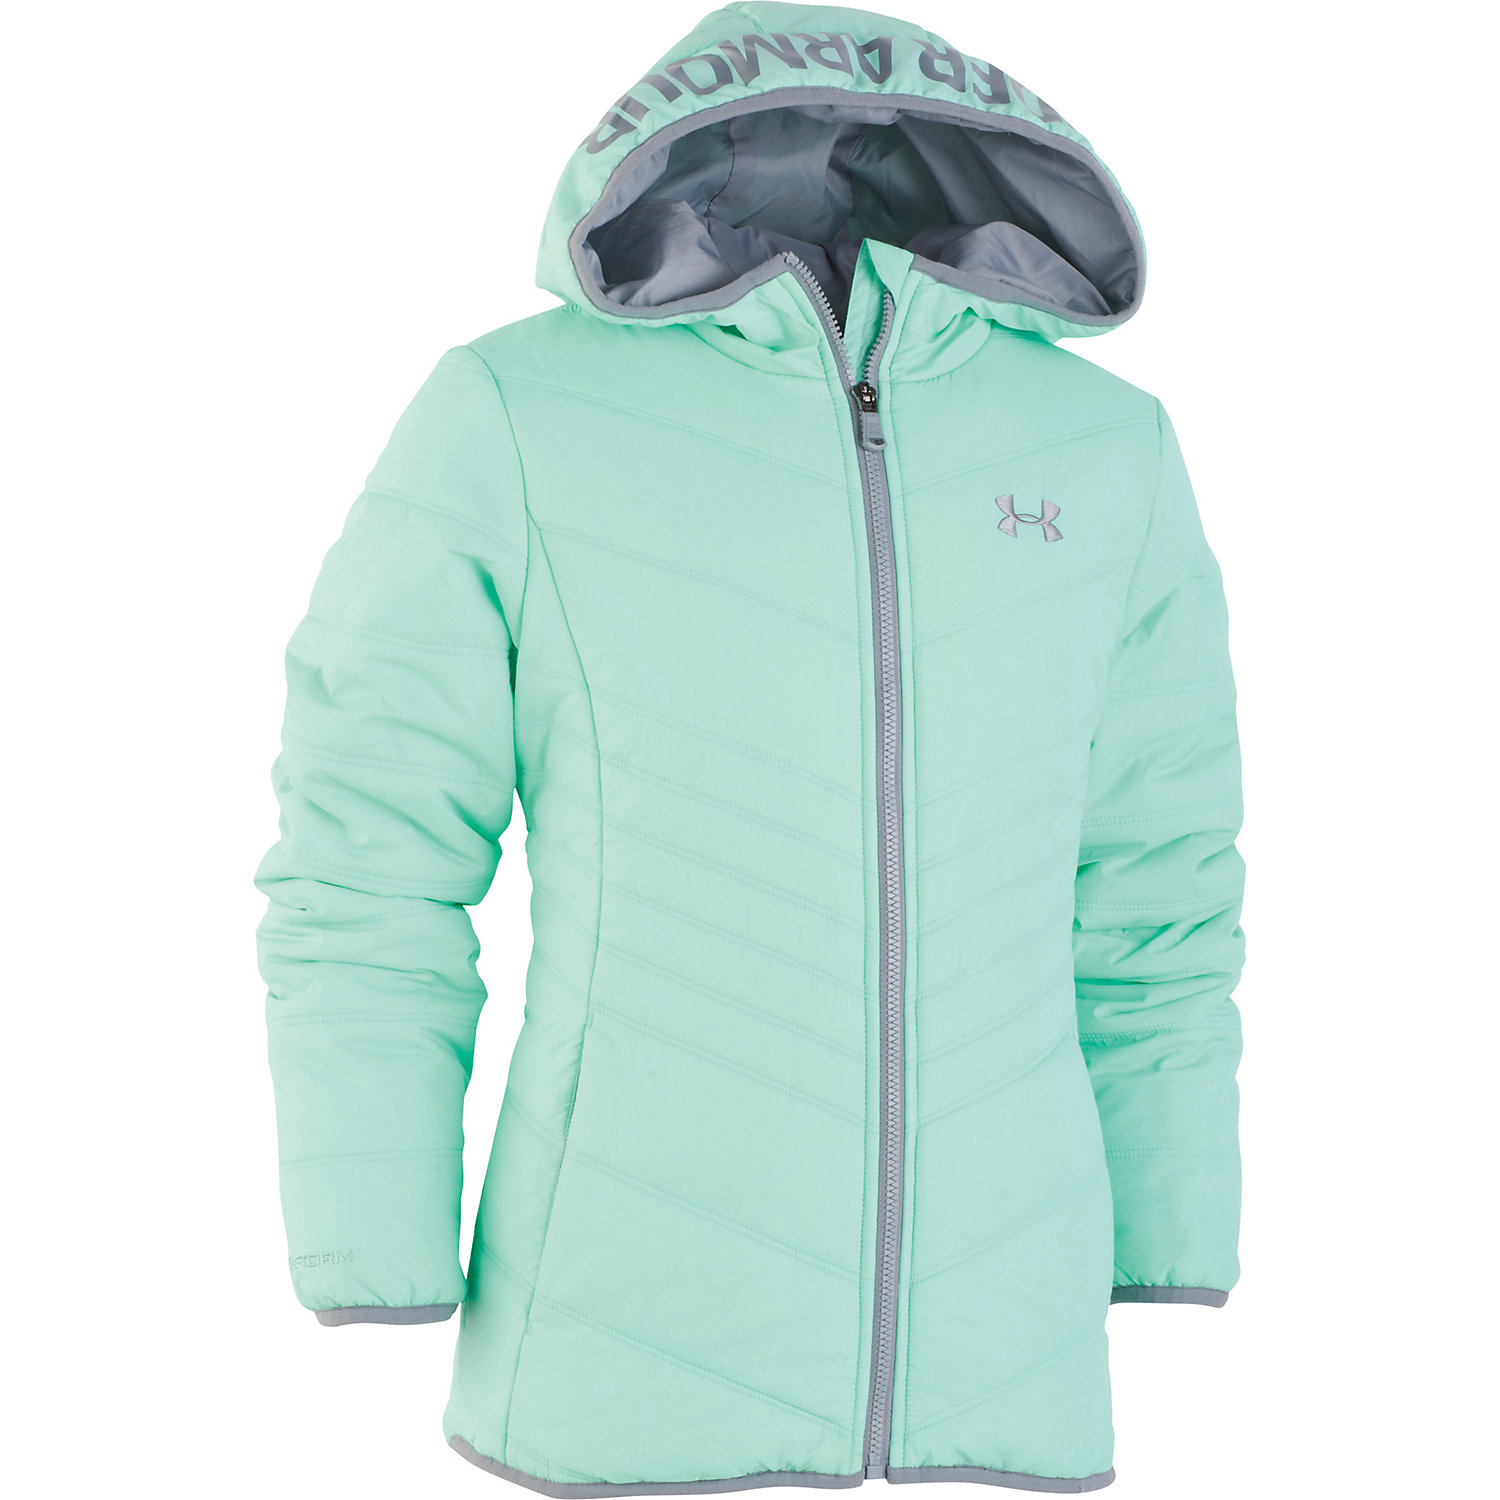 8ee973abe Under Armour Girls' Prime Puffer Jacket